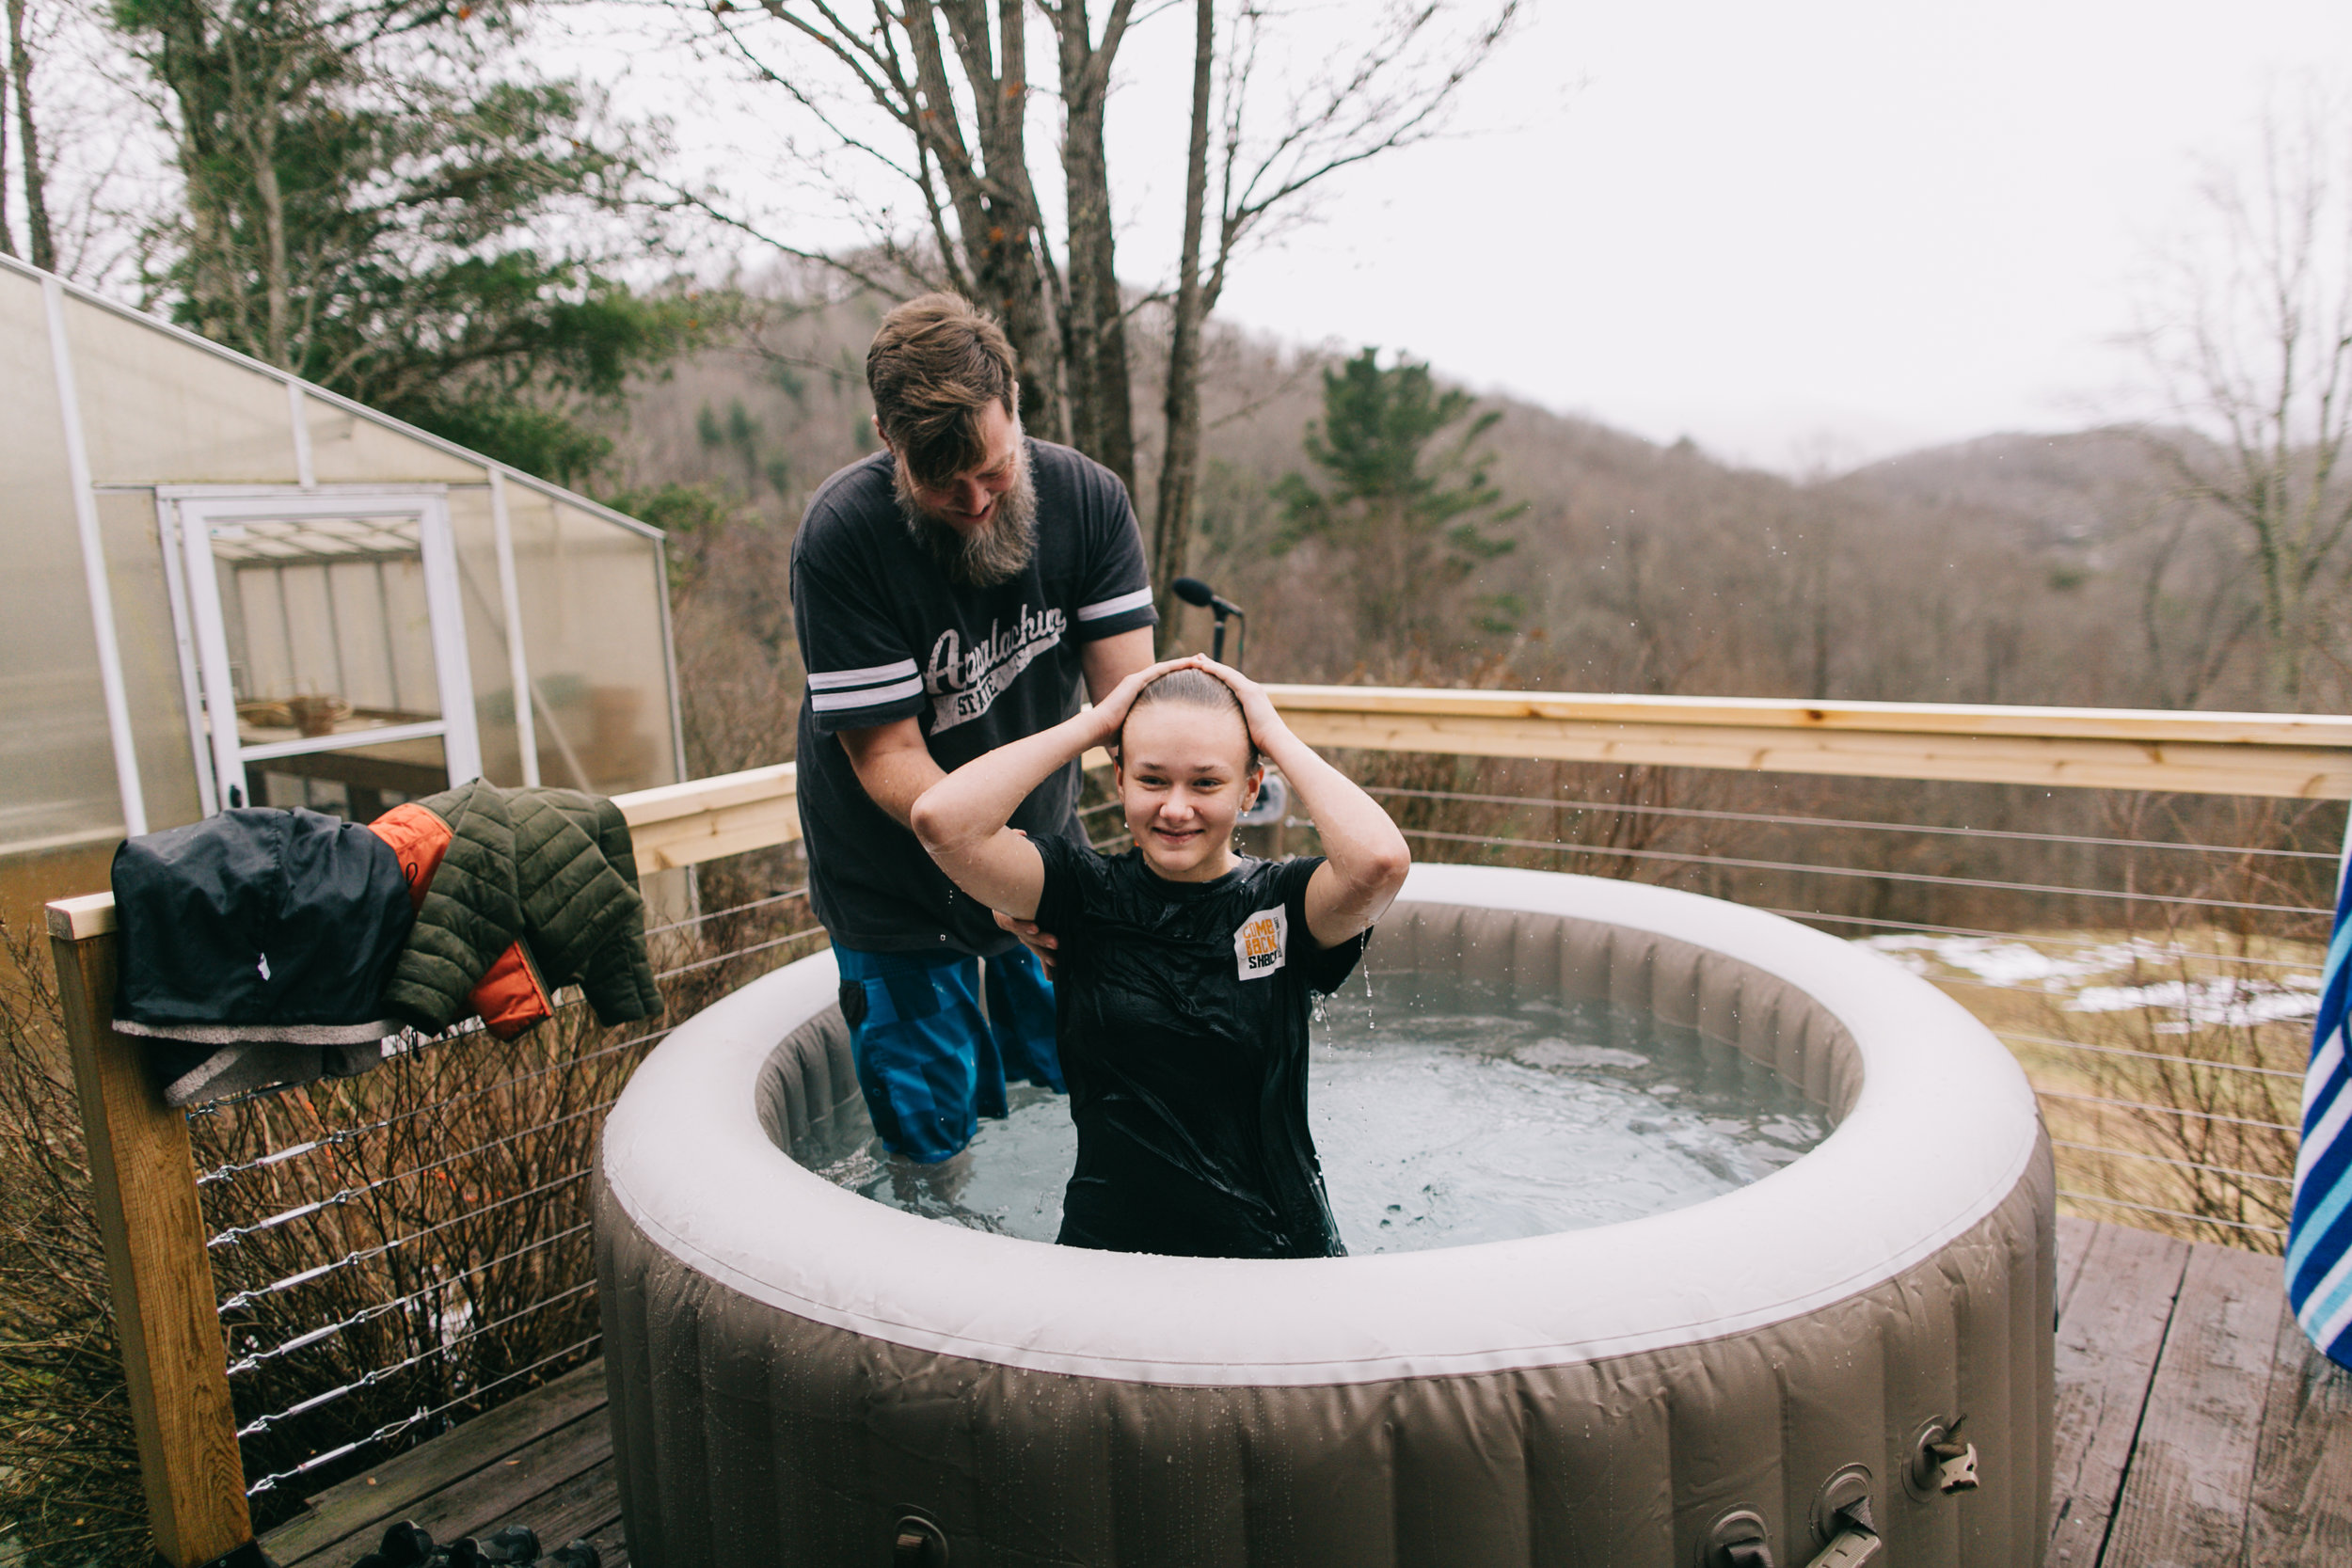 Cloey Hadley, a middle school student at Mountainside, after her dad, Preston, baptized her because of her faith in Jesus.